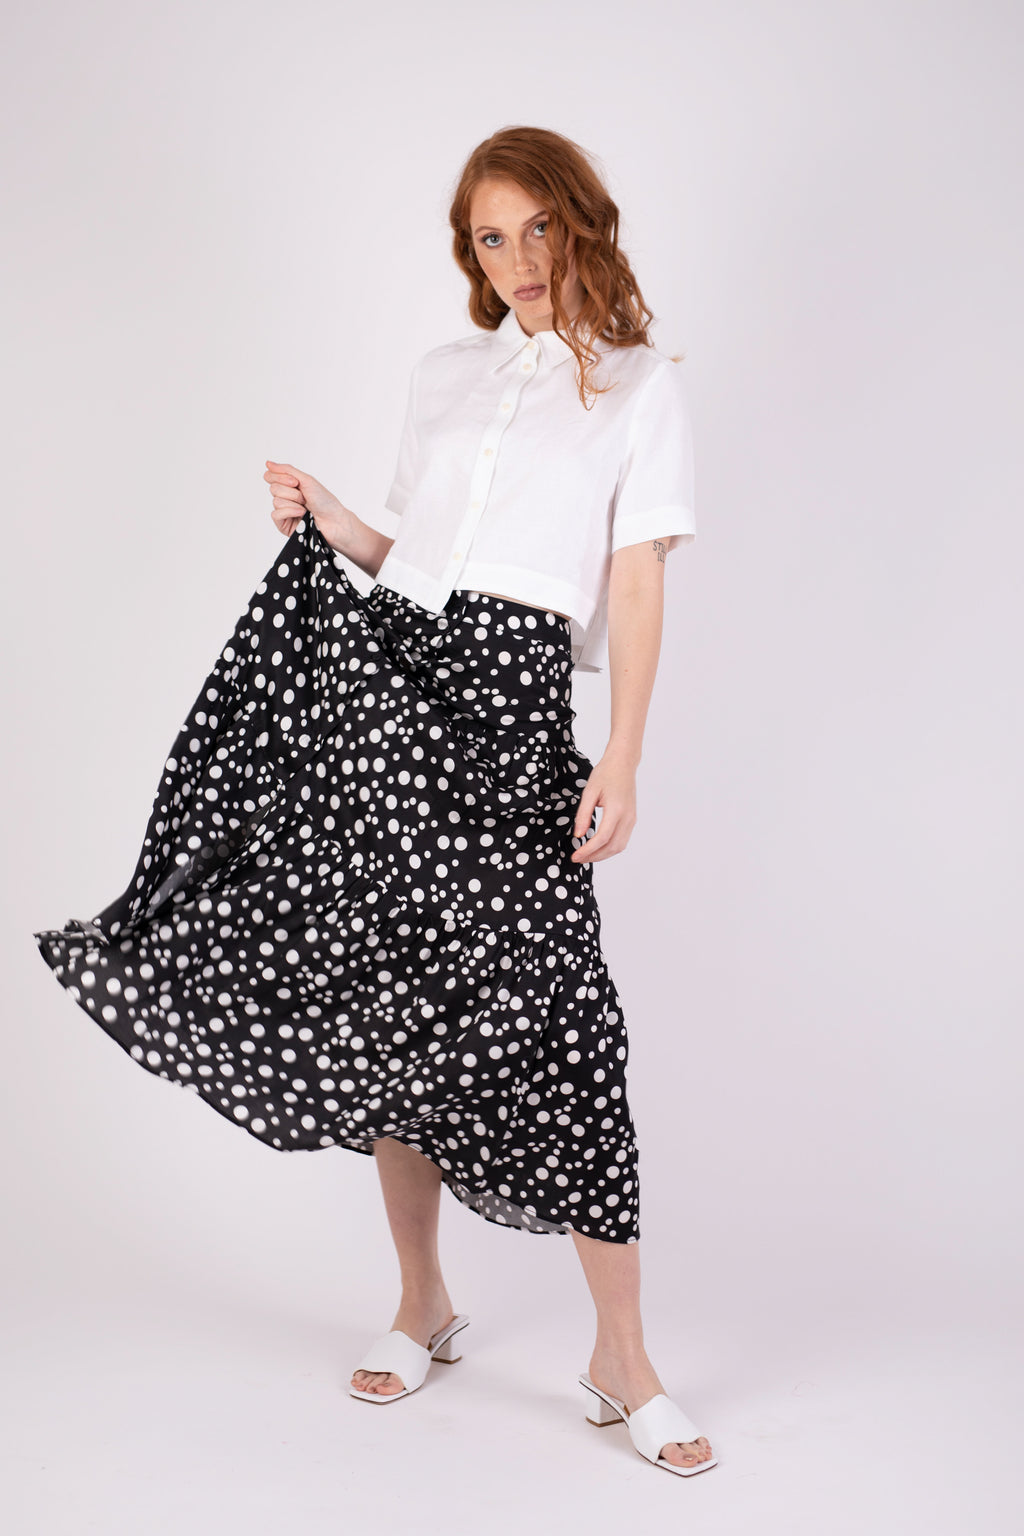 Valencia Skirt - Black Random Dot